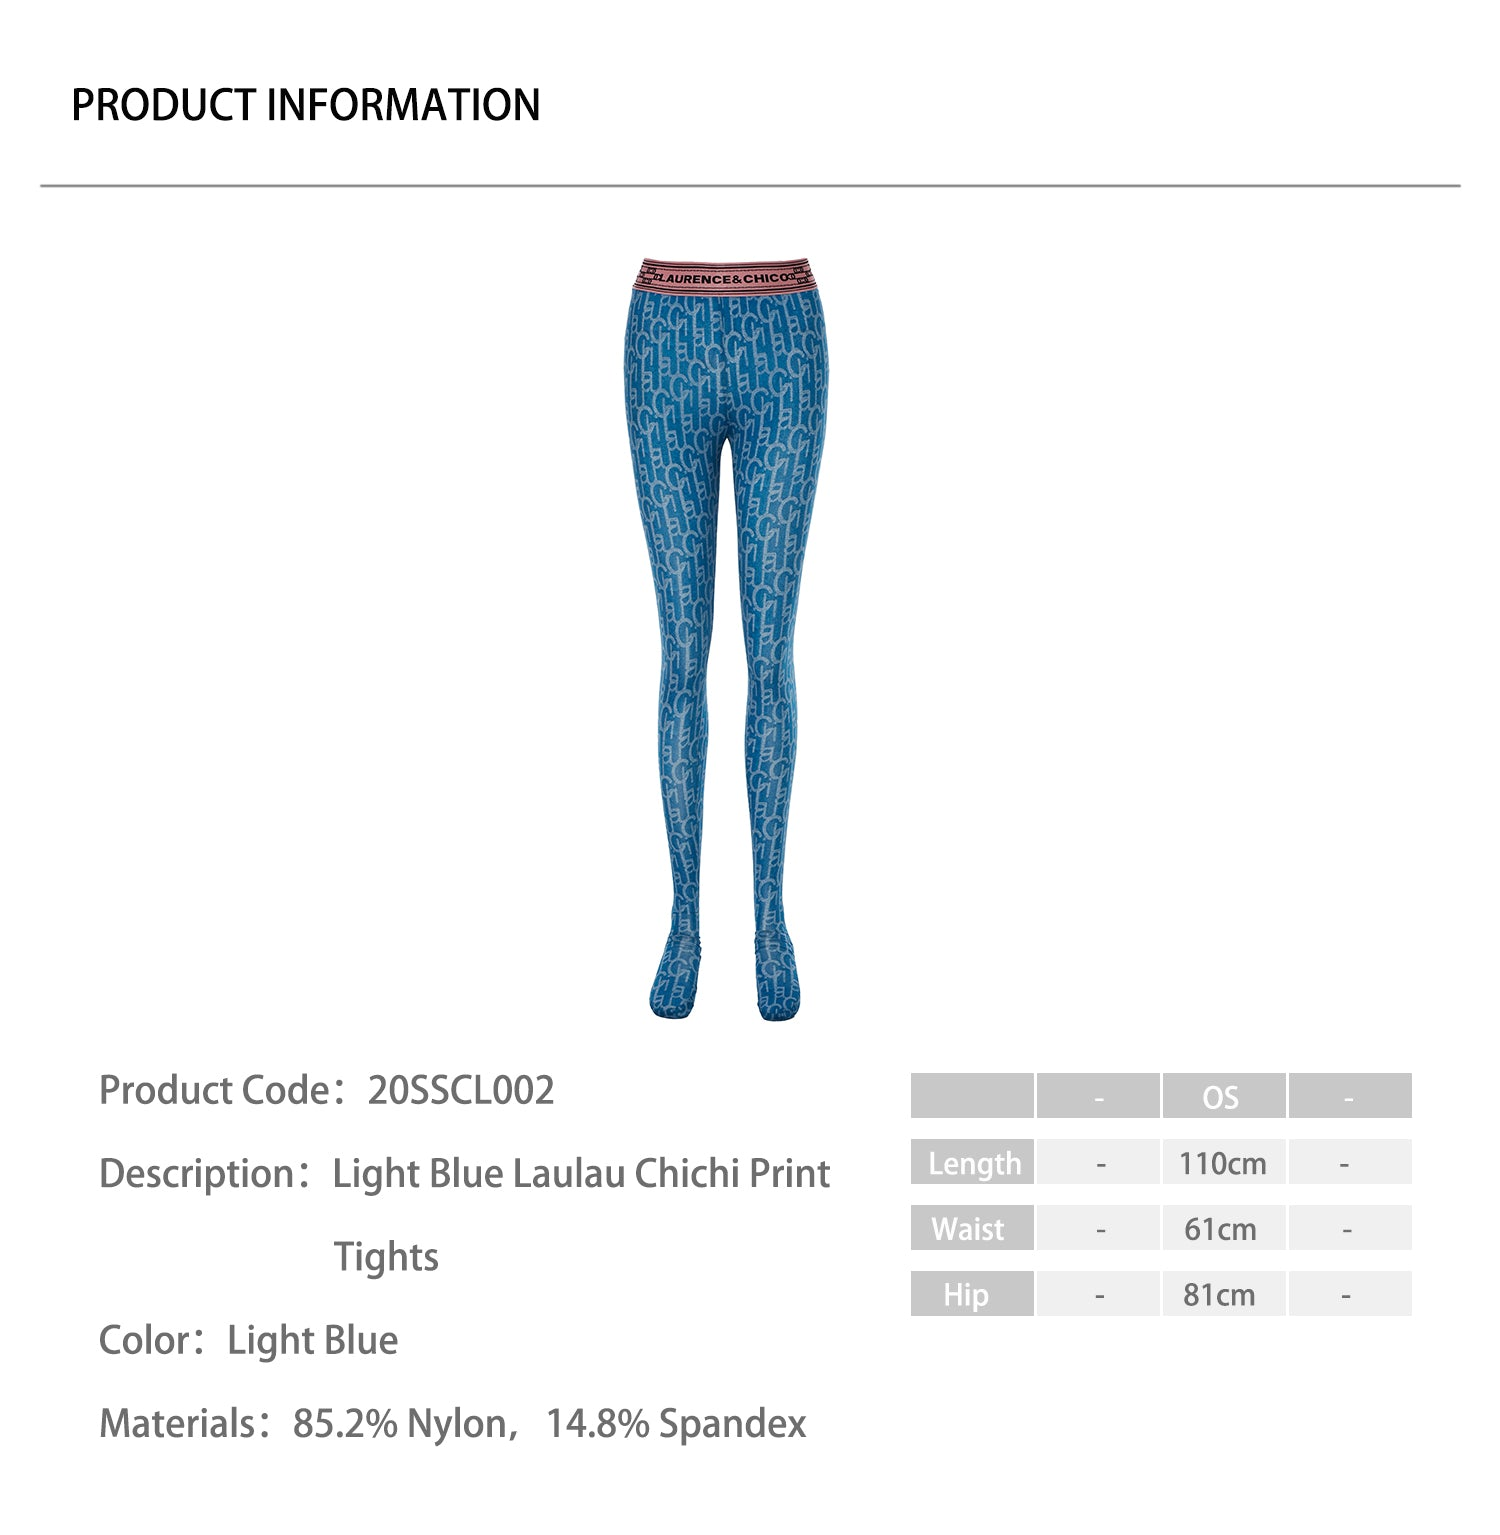 Light Blue Laulau Chichi Print Tights